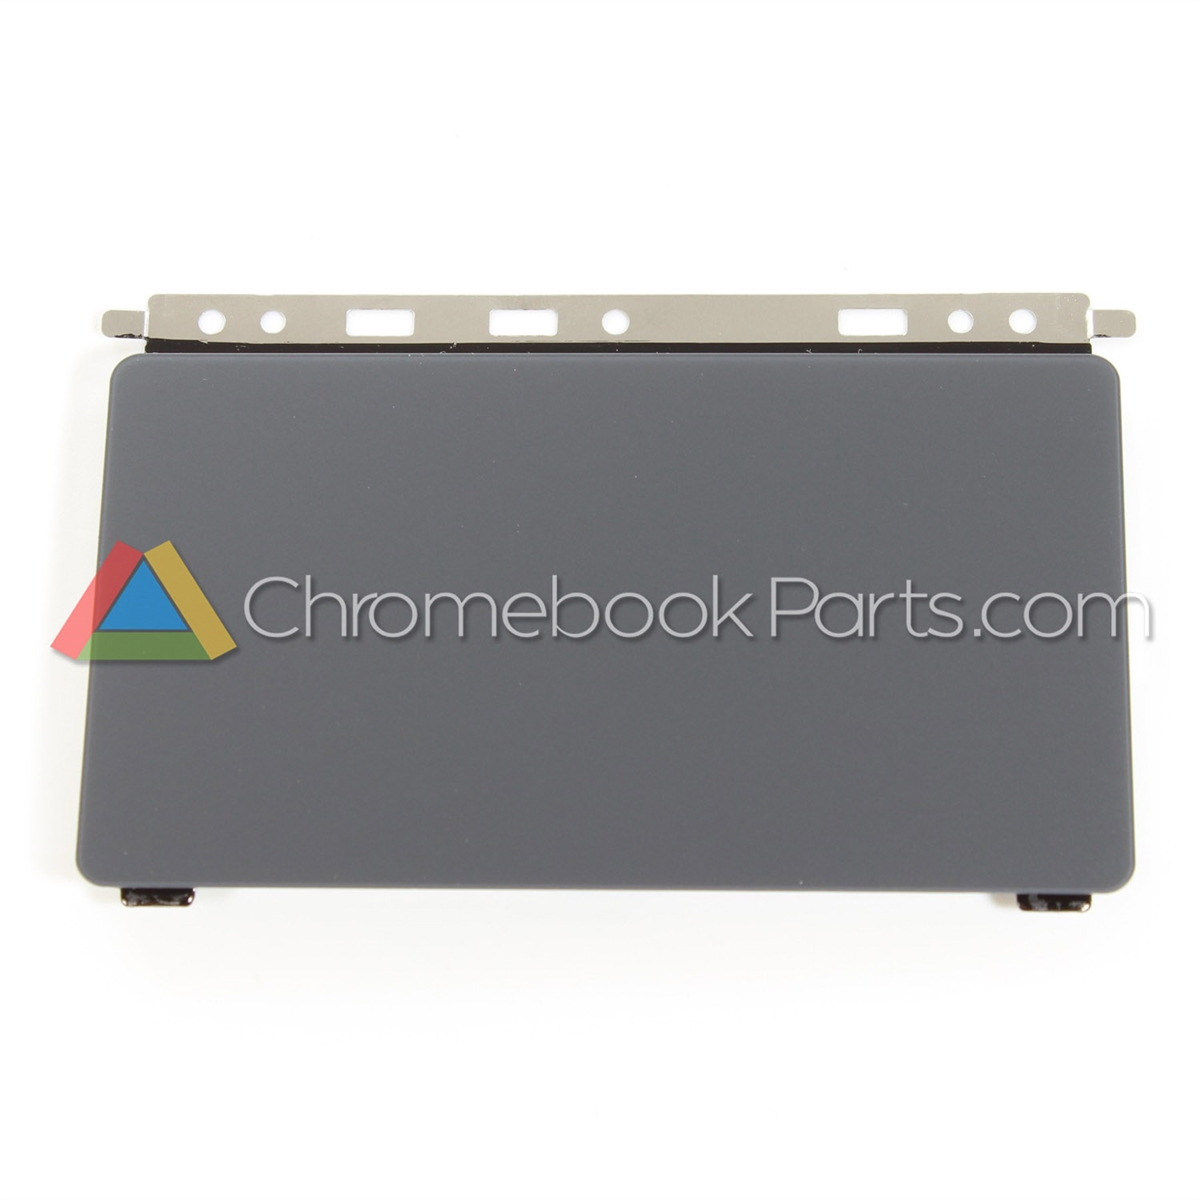 HP 11 G6 EE Chromebook Touchpad